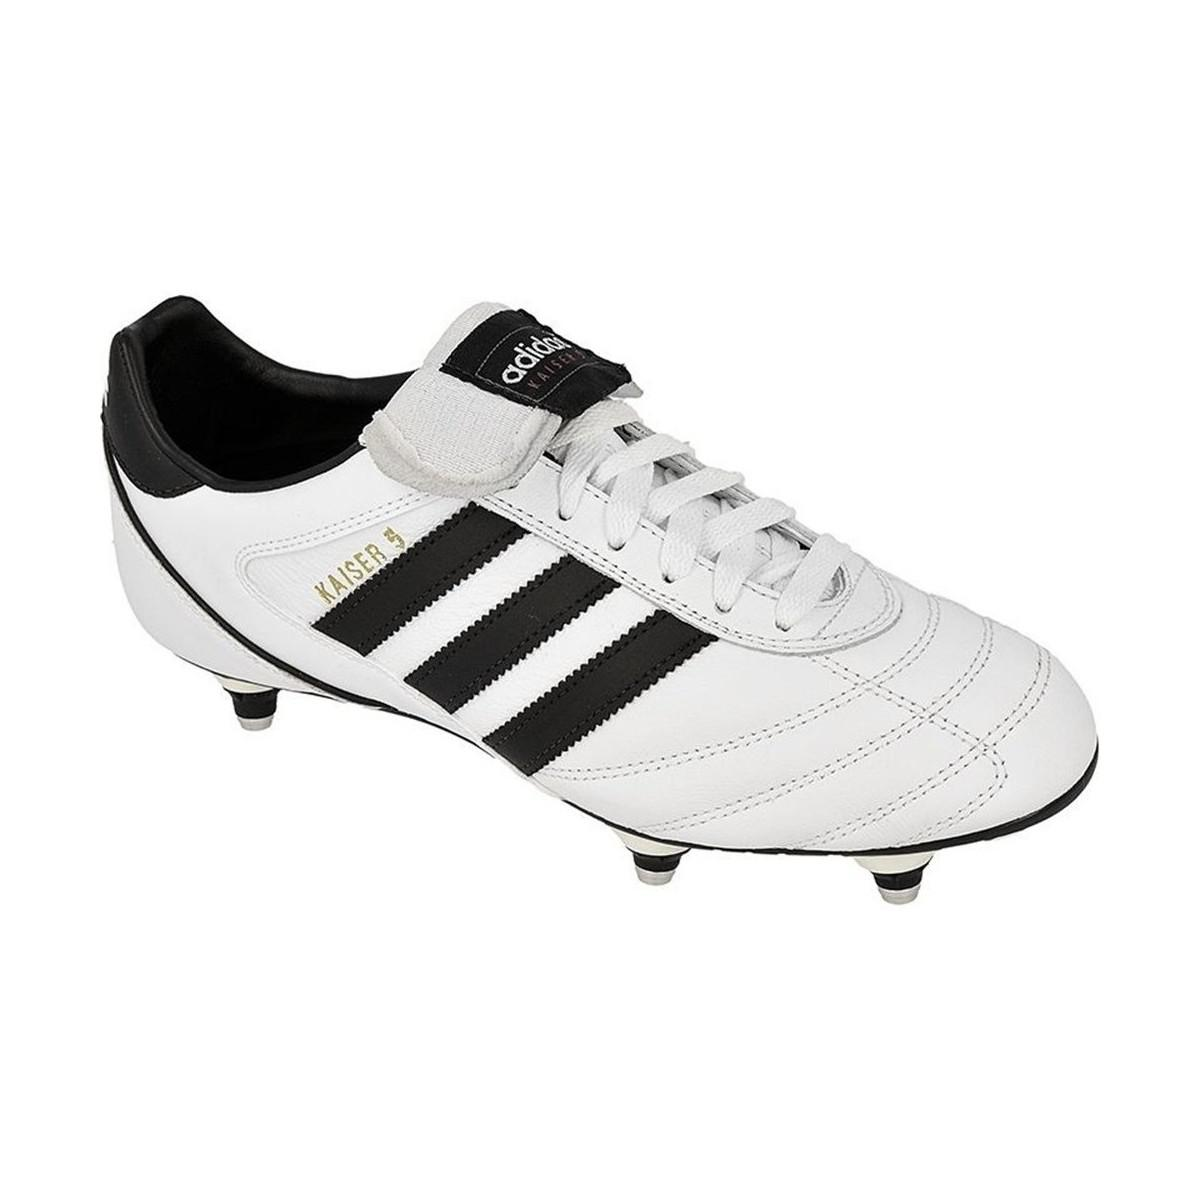 22487b75b96b Adidas Kaiser 5 Cup M Men s Football Boots In Black in Black for Men ...